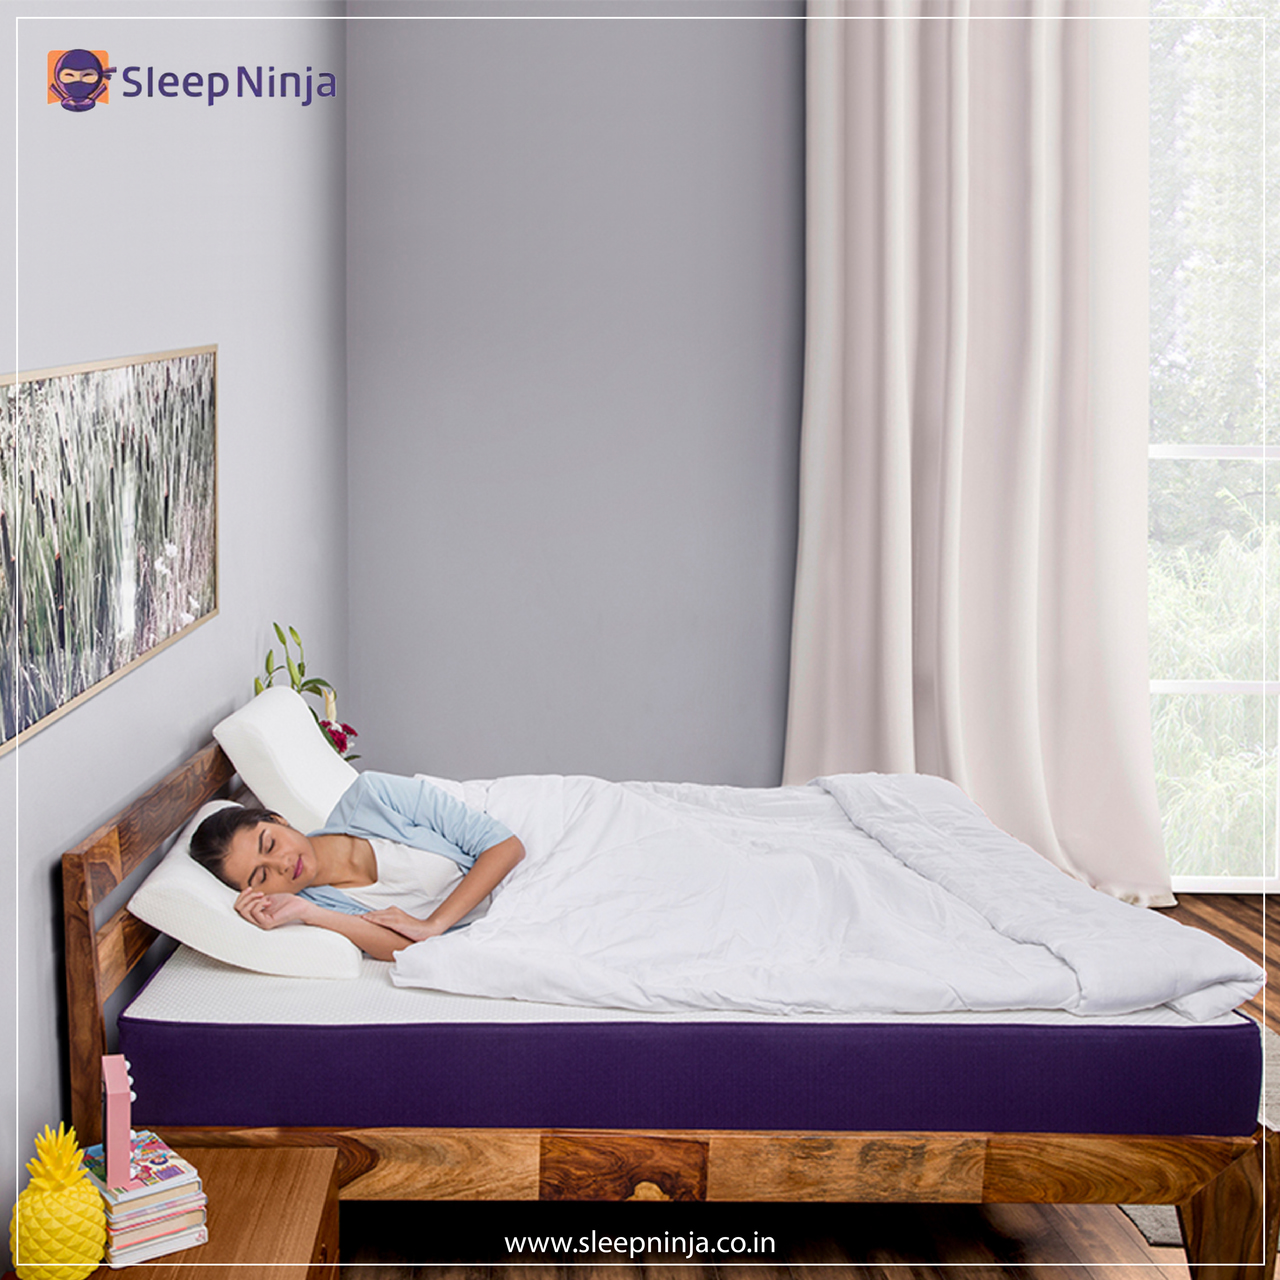 article, buy mattress online, and super soft pillow image